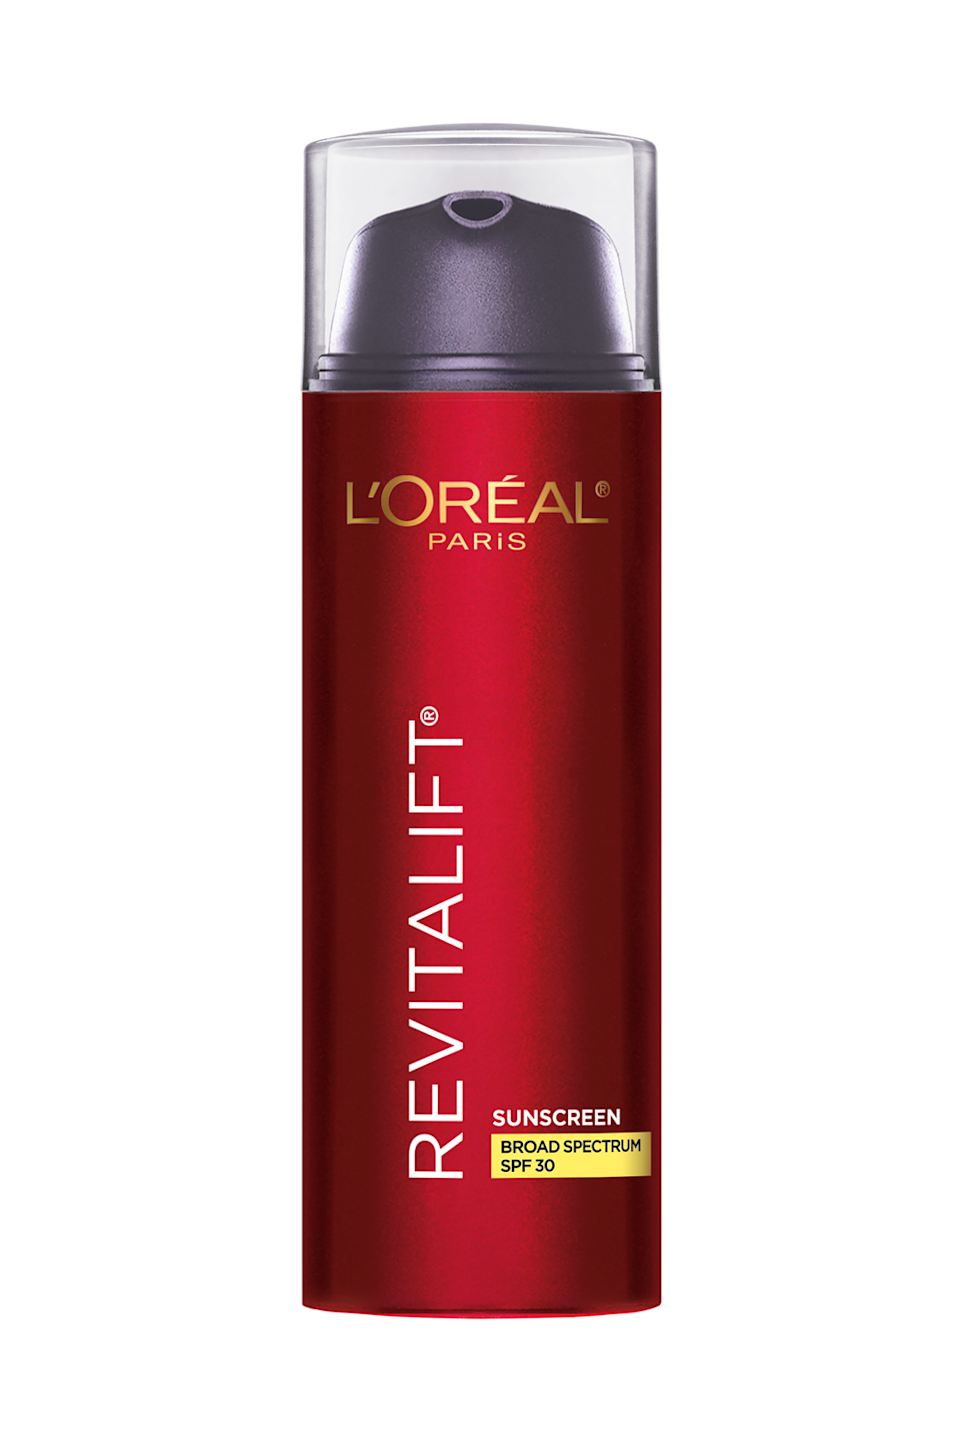 """<p><strong>Revitalift®</strong></p><p>lorealparisusa.com</p><p><strong>$24.99</strong></p><p><a href=""""https://www.lorealparisusa.com/products/skin-care/products/face/revitalift-triple-power-day-lotion-spf-30.aspx"""" rel=""""nofollow noopener"""" target=""""_blank"""" data-ylk=""""slk:Shop Now"""" class=""""link rapid-noclick-resp"""">Shop Now</a></p><p>A combination of <a href=""""https://www.cosmopolitan.com/style-beauty/beauty/g25837230/retinol-face-cream/"""" rel=""""nofollow noopener"""" target=""""_blank"""" data-ylk=""""slk:pro-retinol"""" class=""""link rapid-noclick-resp"""">pro-retinol</a>, vitamin C, and hyaluronic acid all come together in this drugstore sunscreen that <strong>helps firm, hydrate, and brighten your sk</strong><strong>in</strong>. Smooth it over your face as the last step in your morning skincare routine and you'll def love the soft texture it leaves behind.<br></p>"""